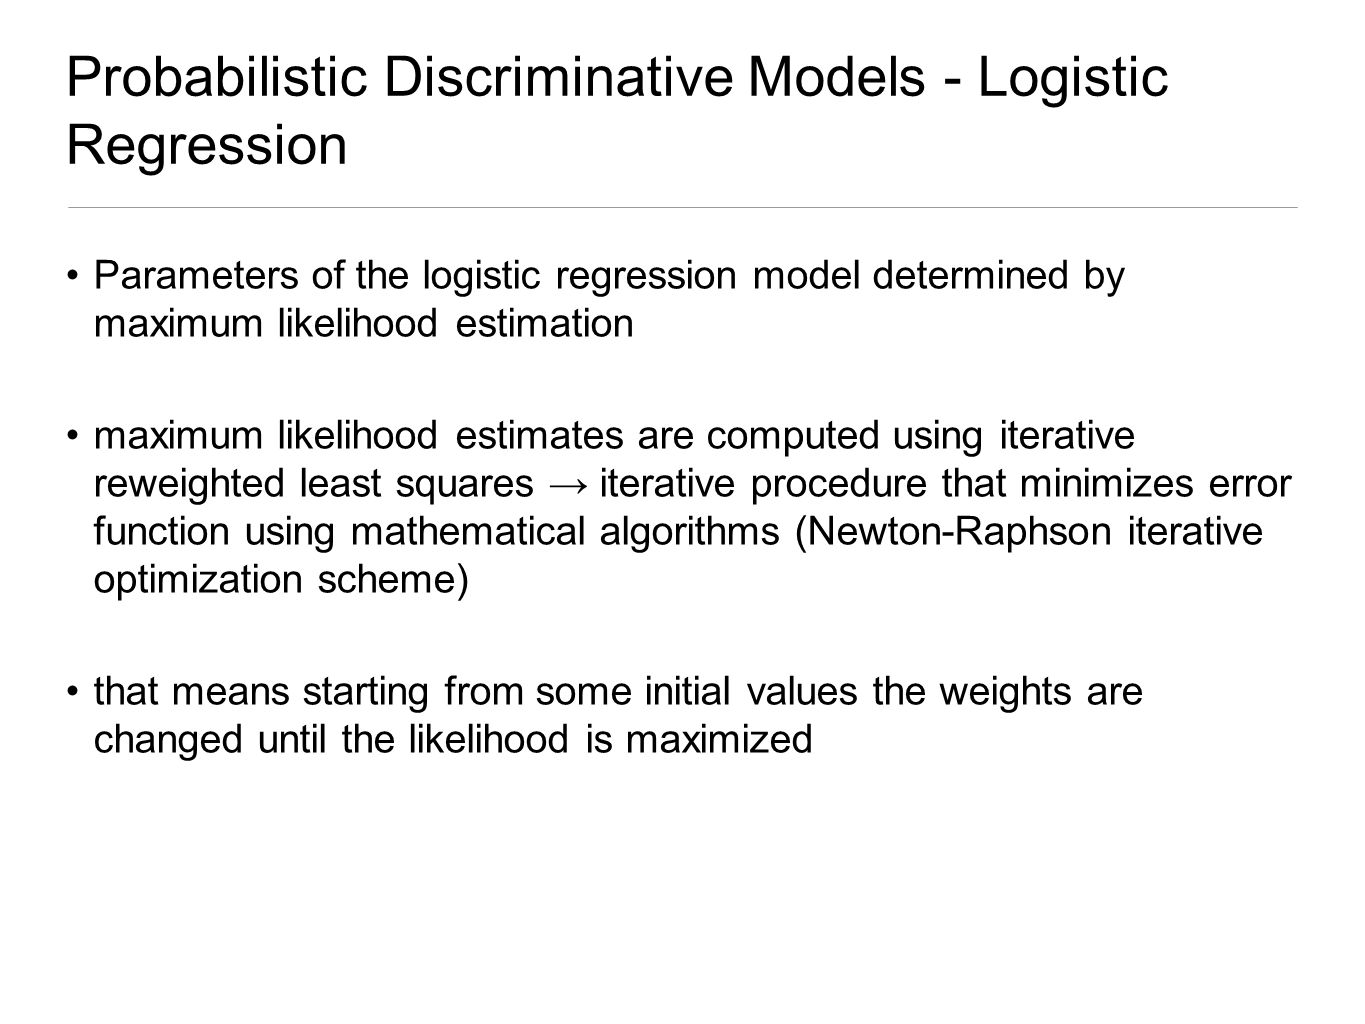 Probabilistic Discriminative Models - Logistic Regression